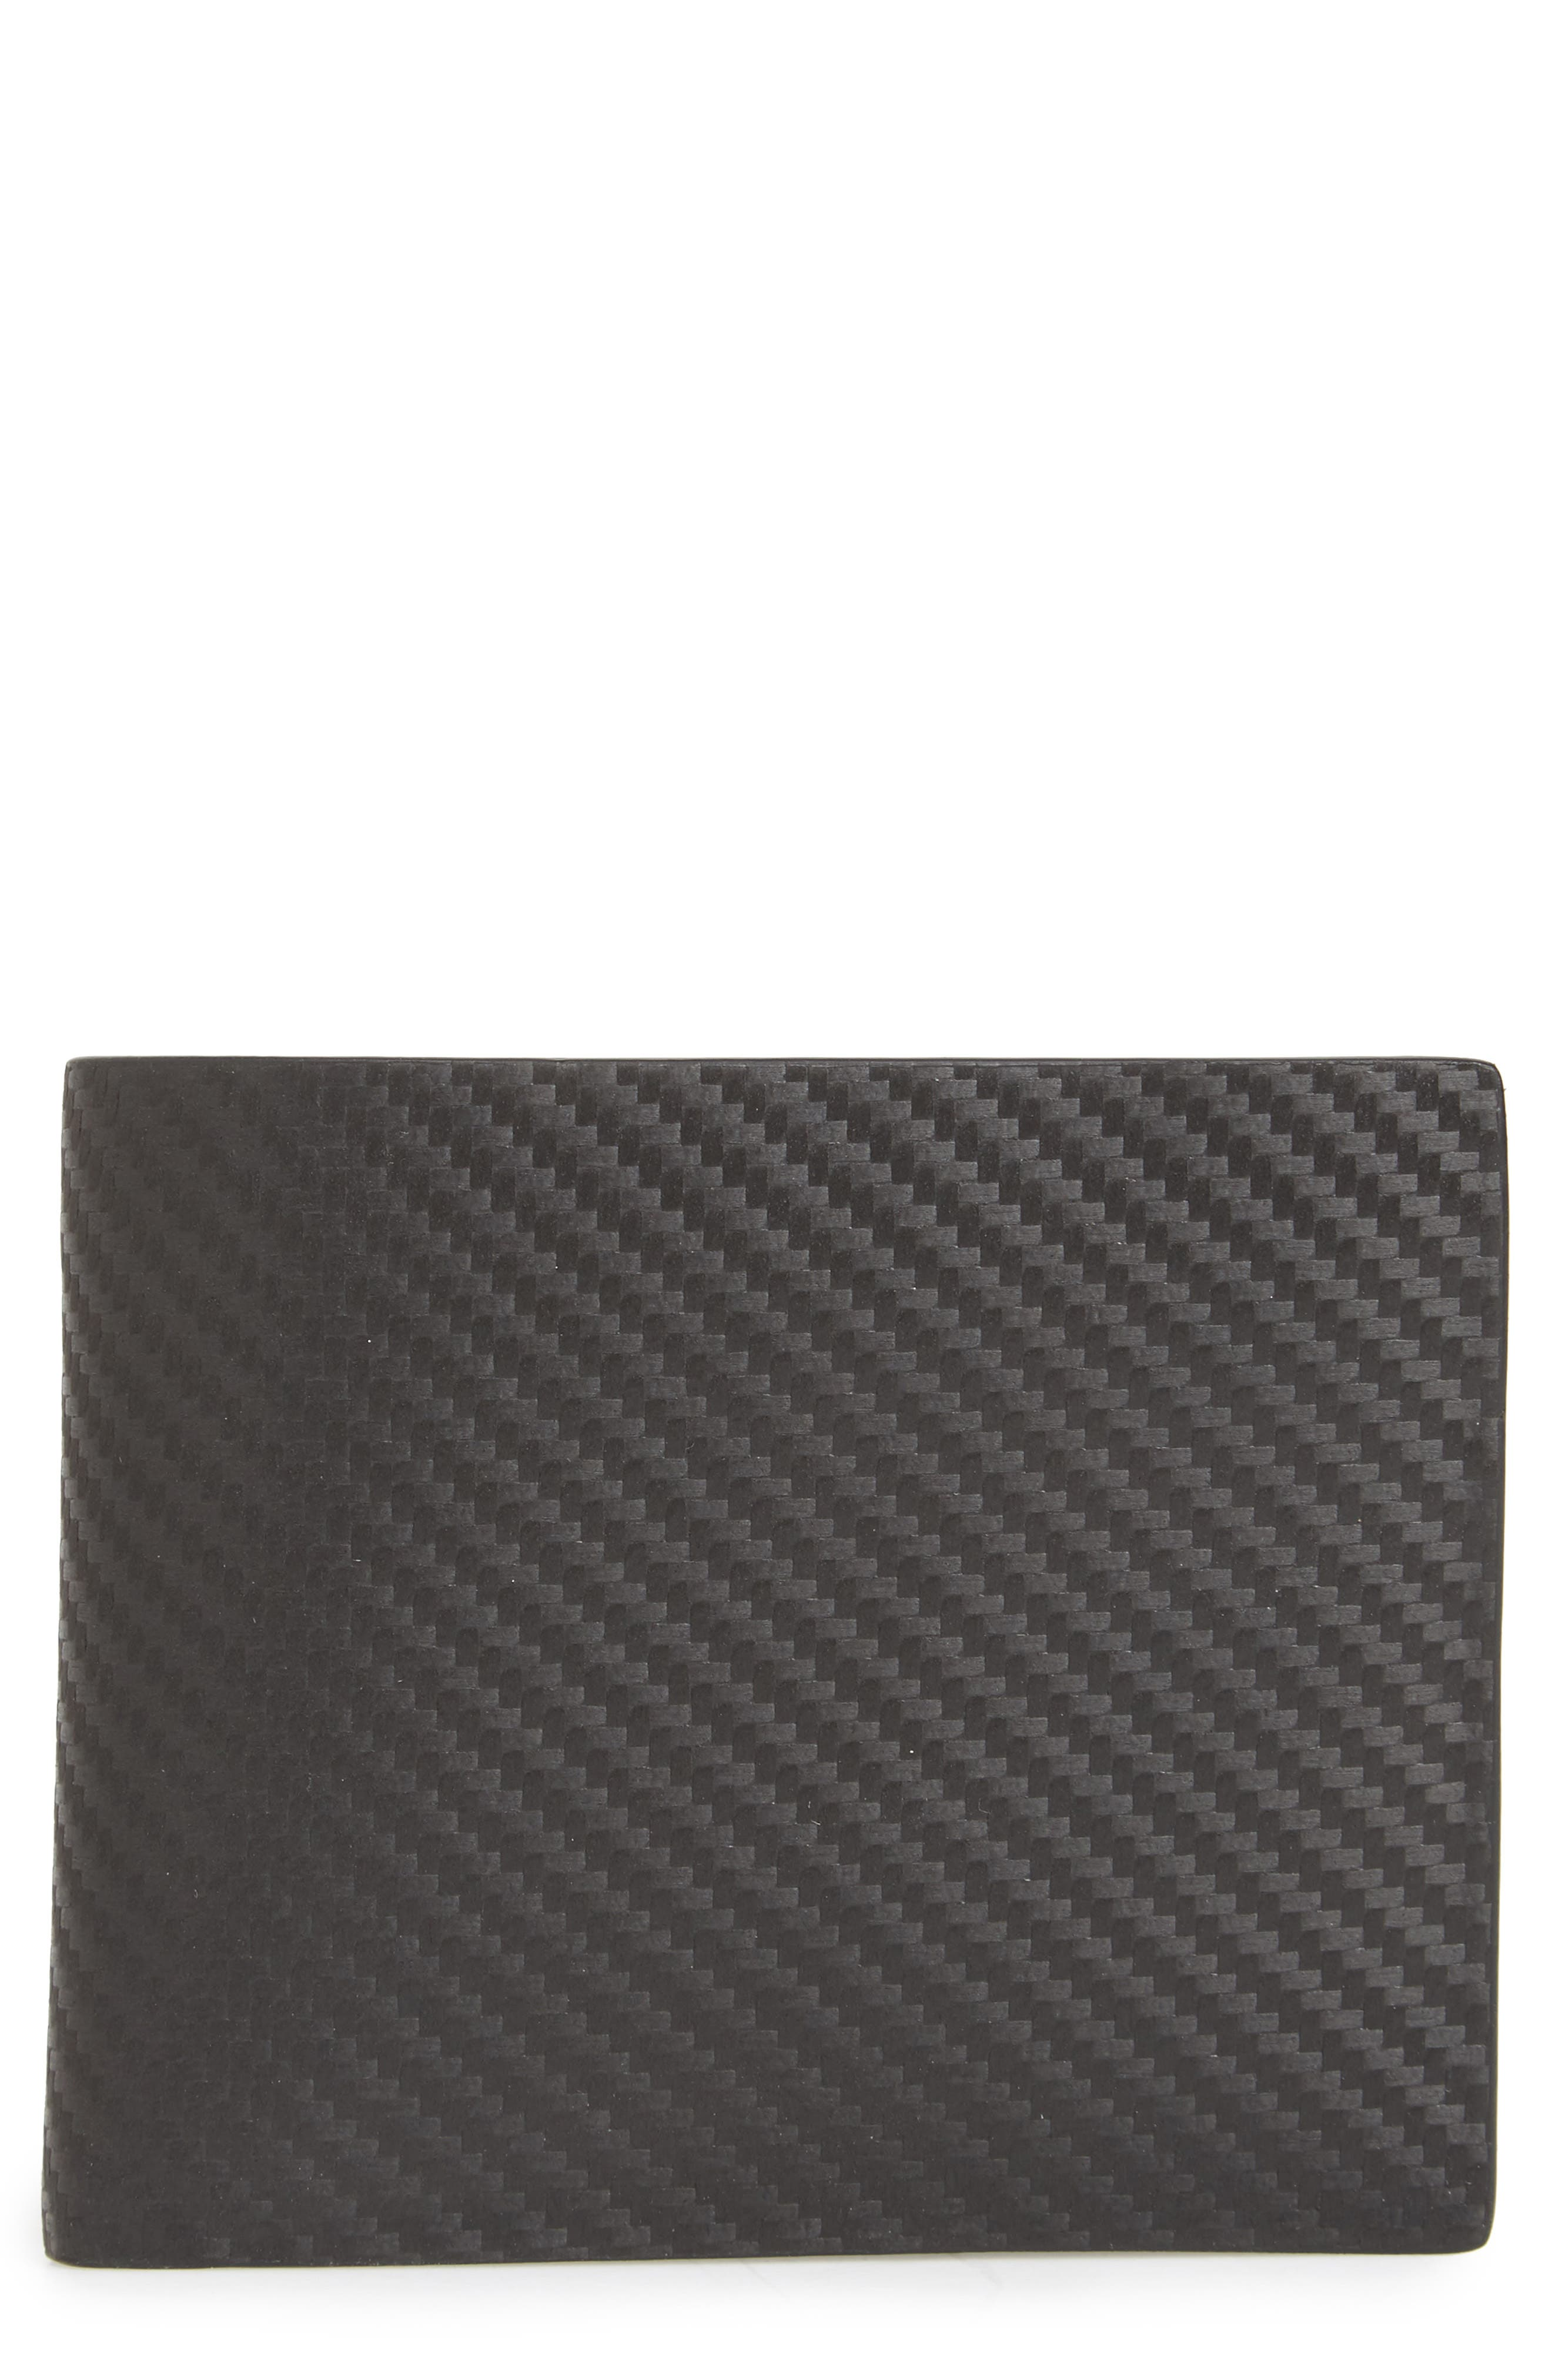 Chassis Leather Wallet,                             Main thumbnail 1, color,                             Black